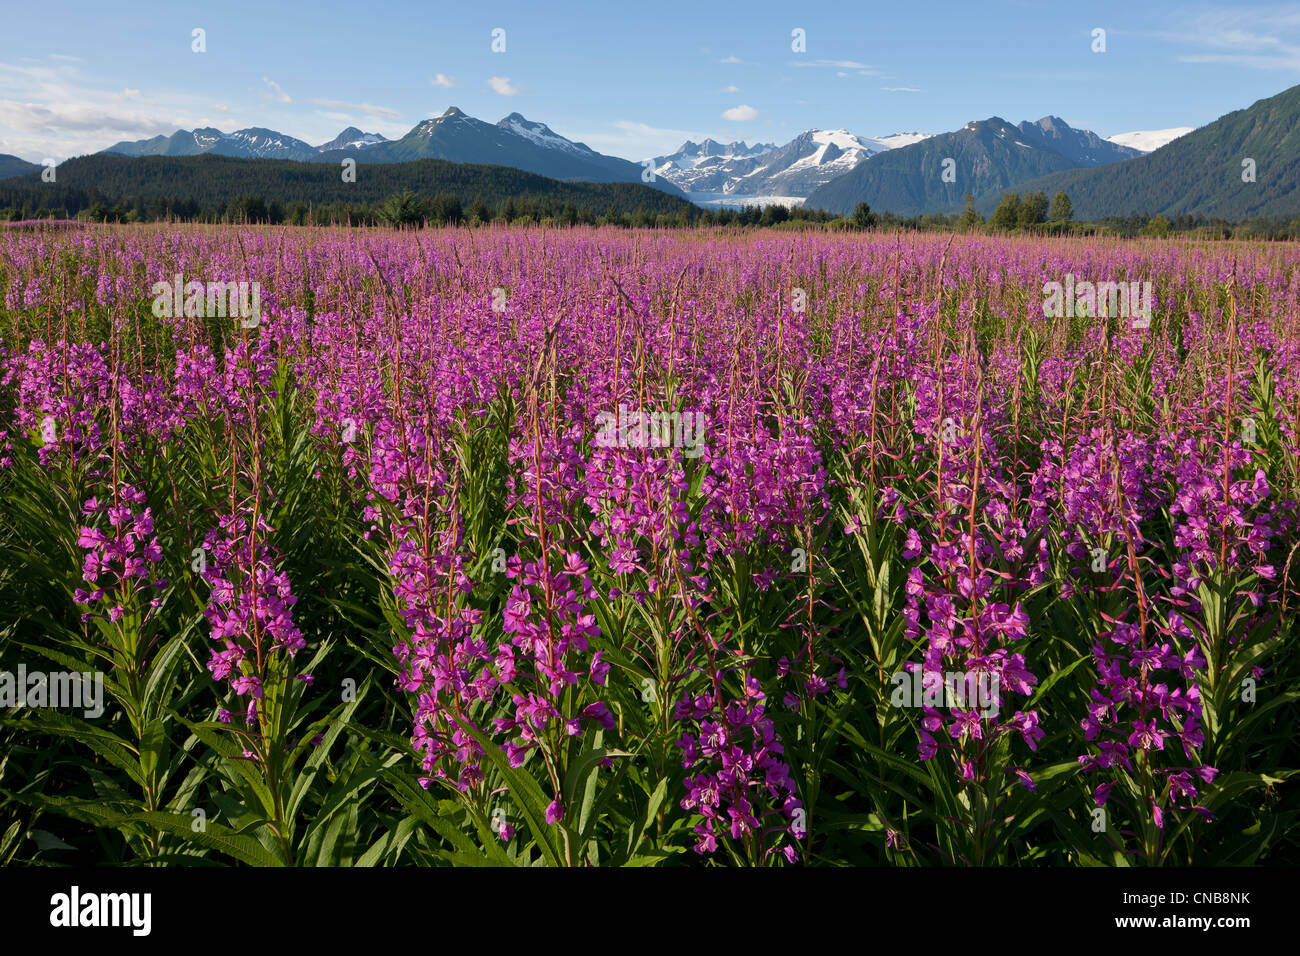 Scenic view of a field of Fireweed with Mendenhall Glacier and Towers in the background, Southeast Alaska, Summer - Stock Image